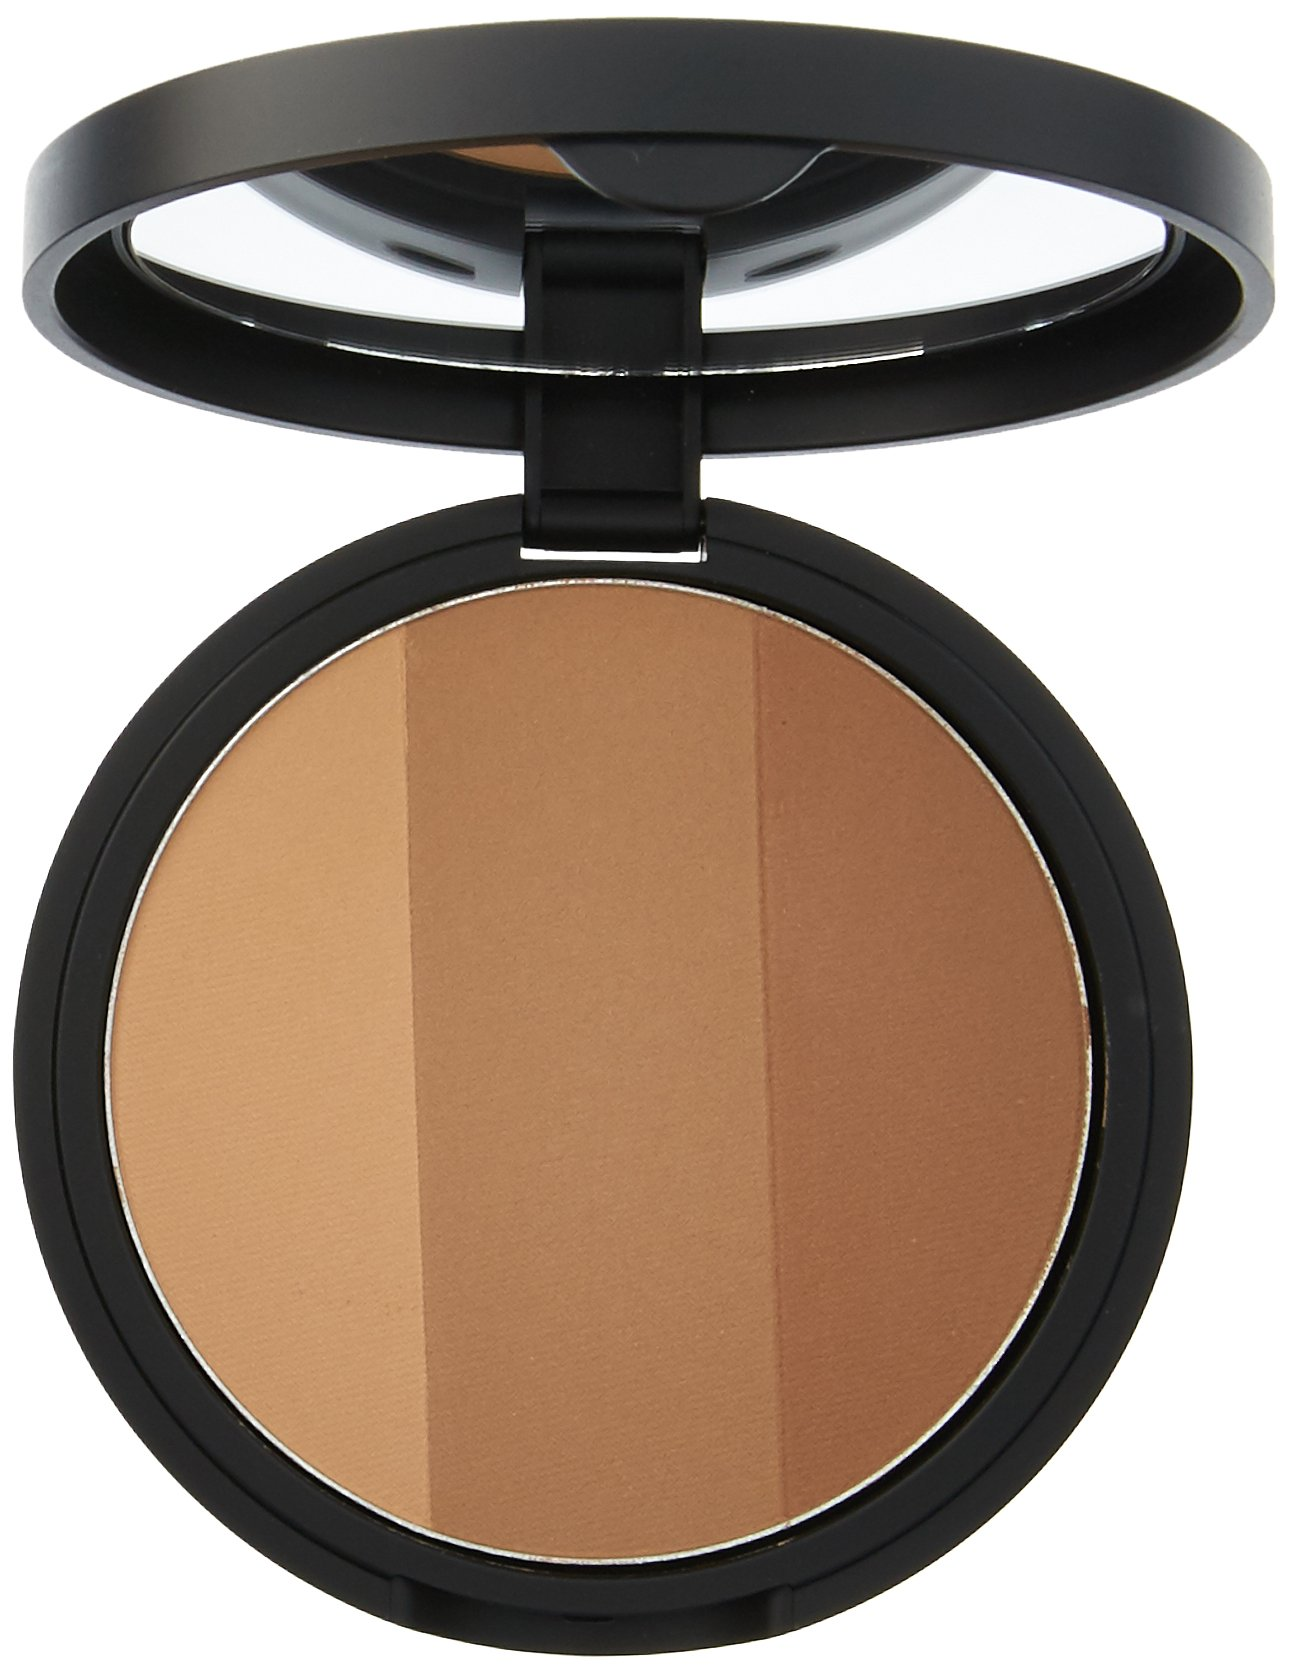 Too Cool For School by Roddin Face Blush, 0.335 Ounce by too cool for school (Image #4)